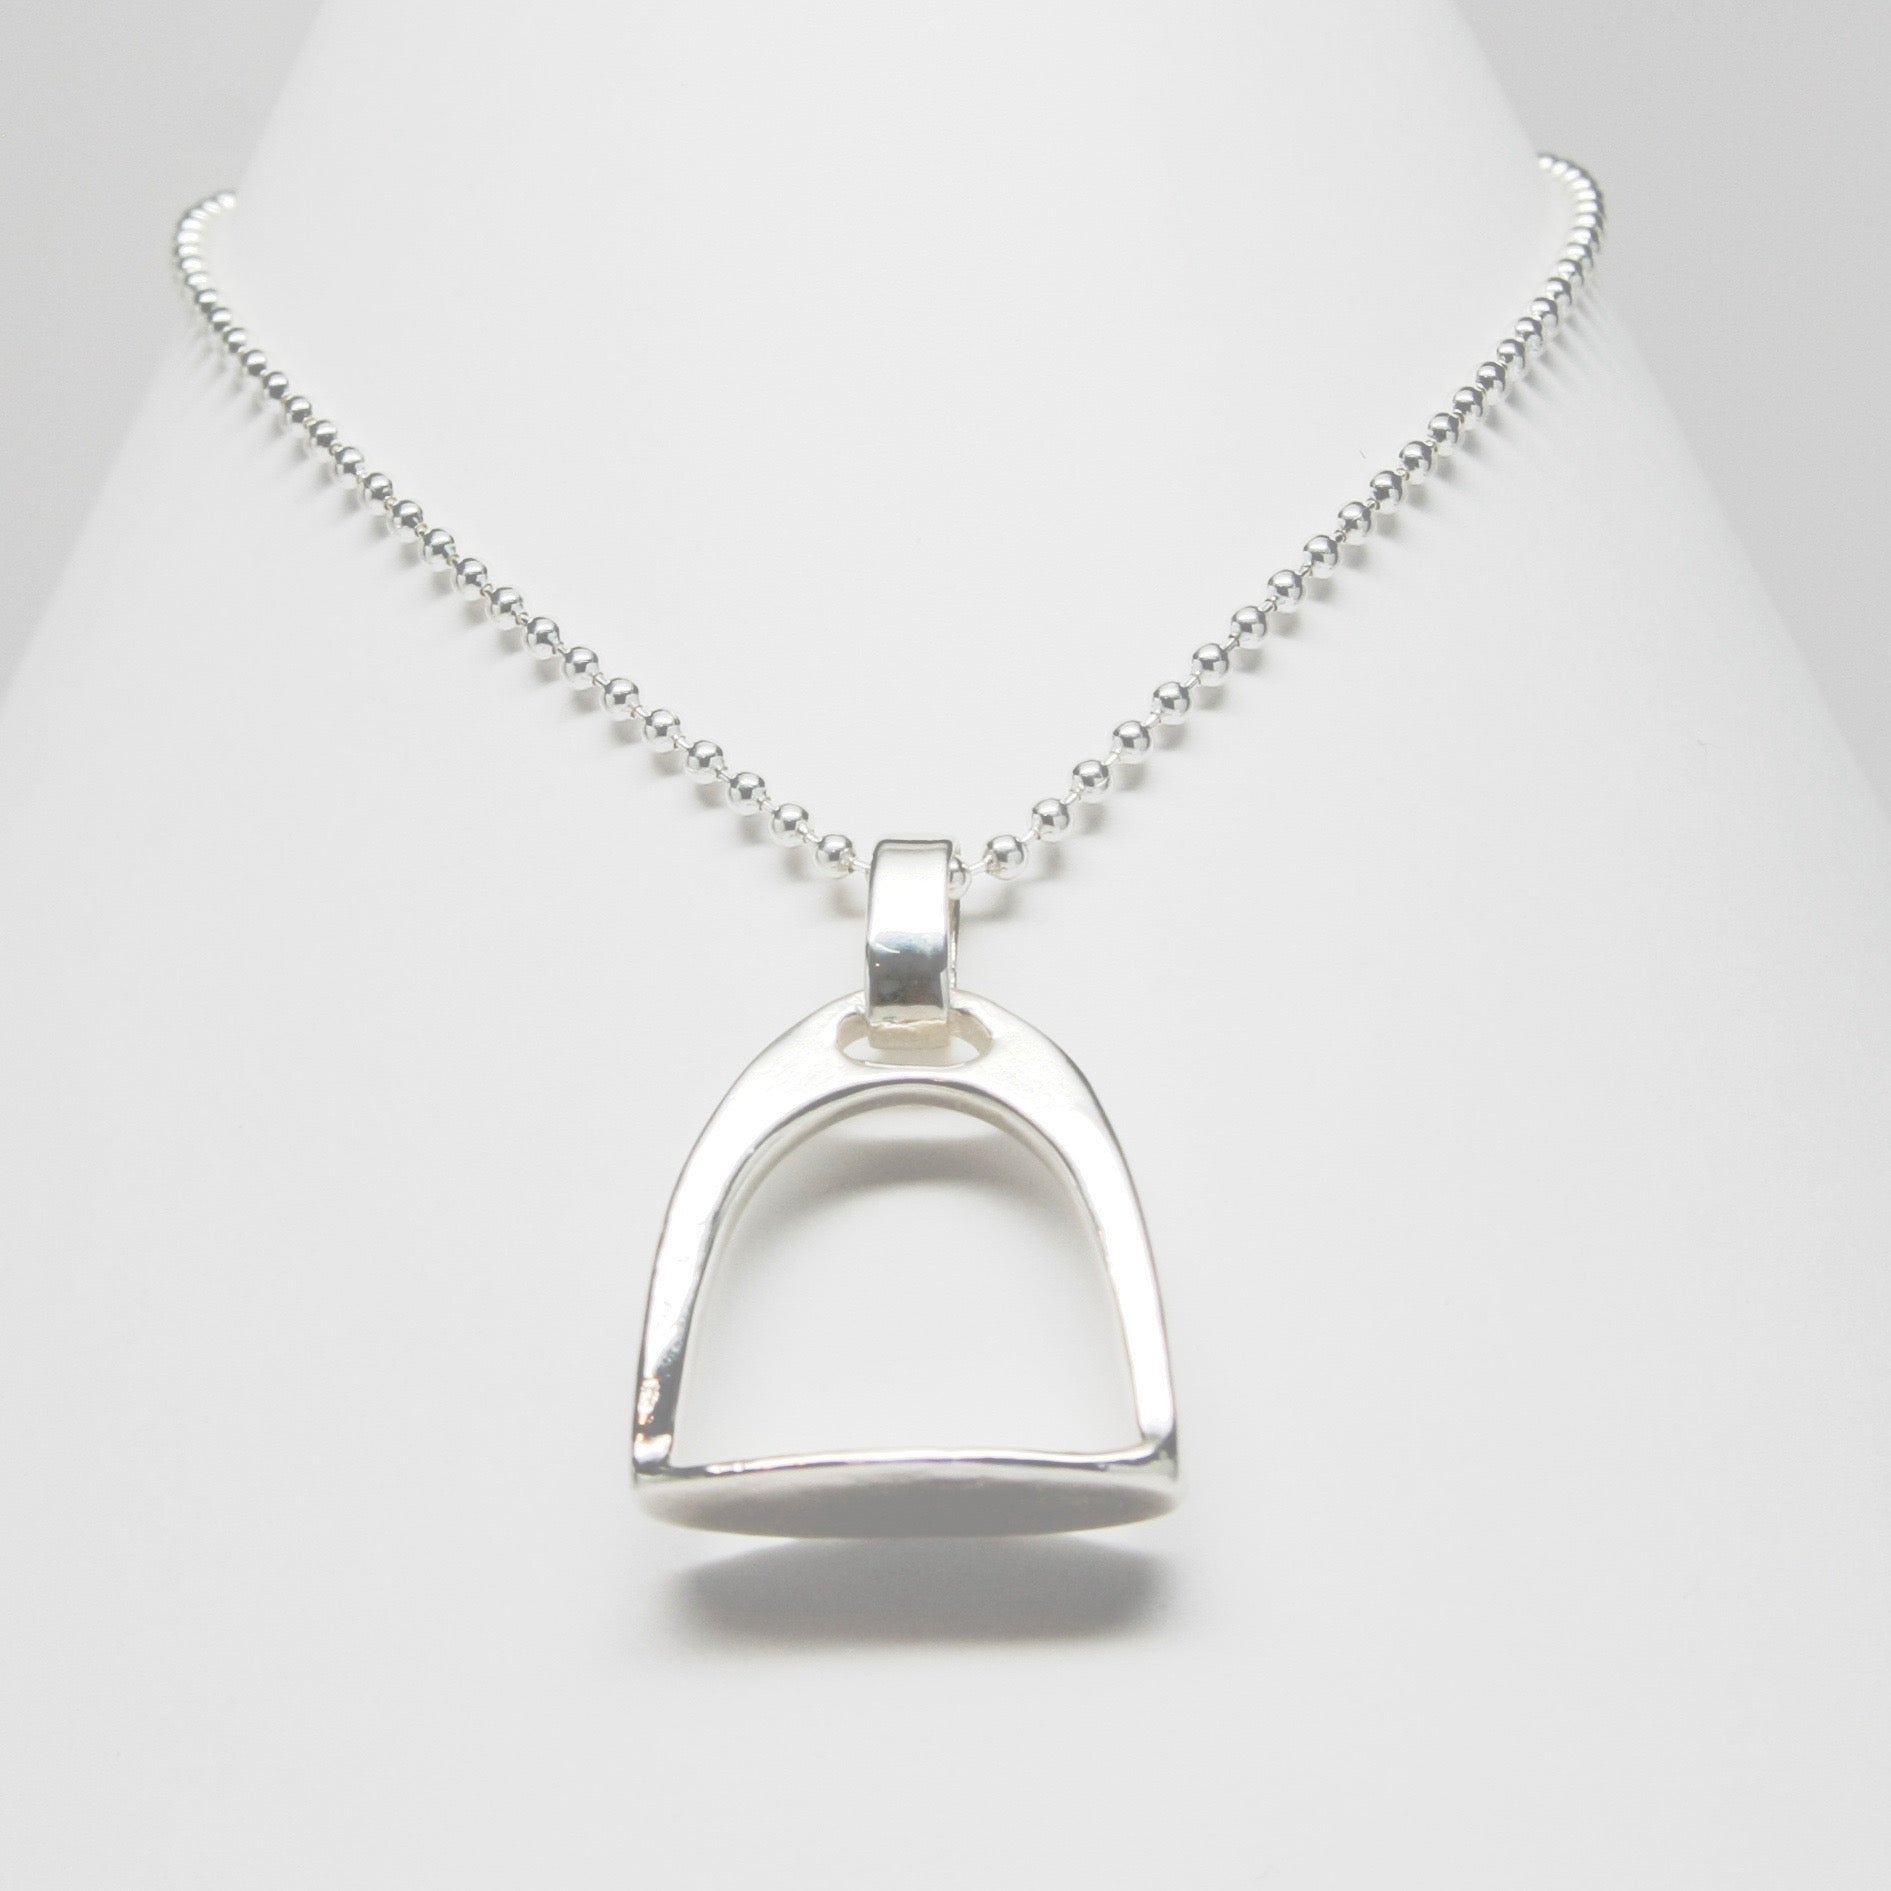 Equestrian classic sterling silver stirrup necklace